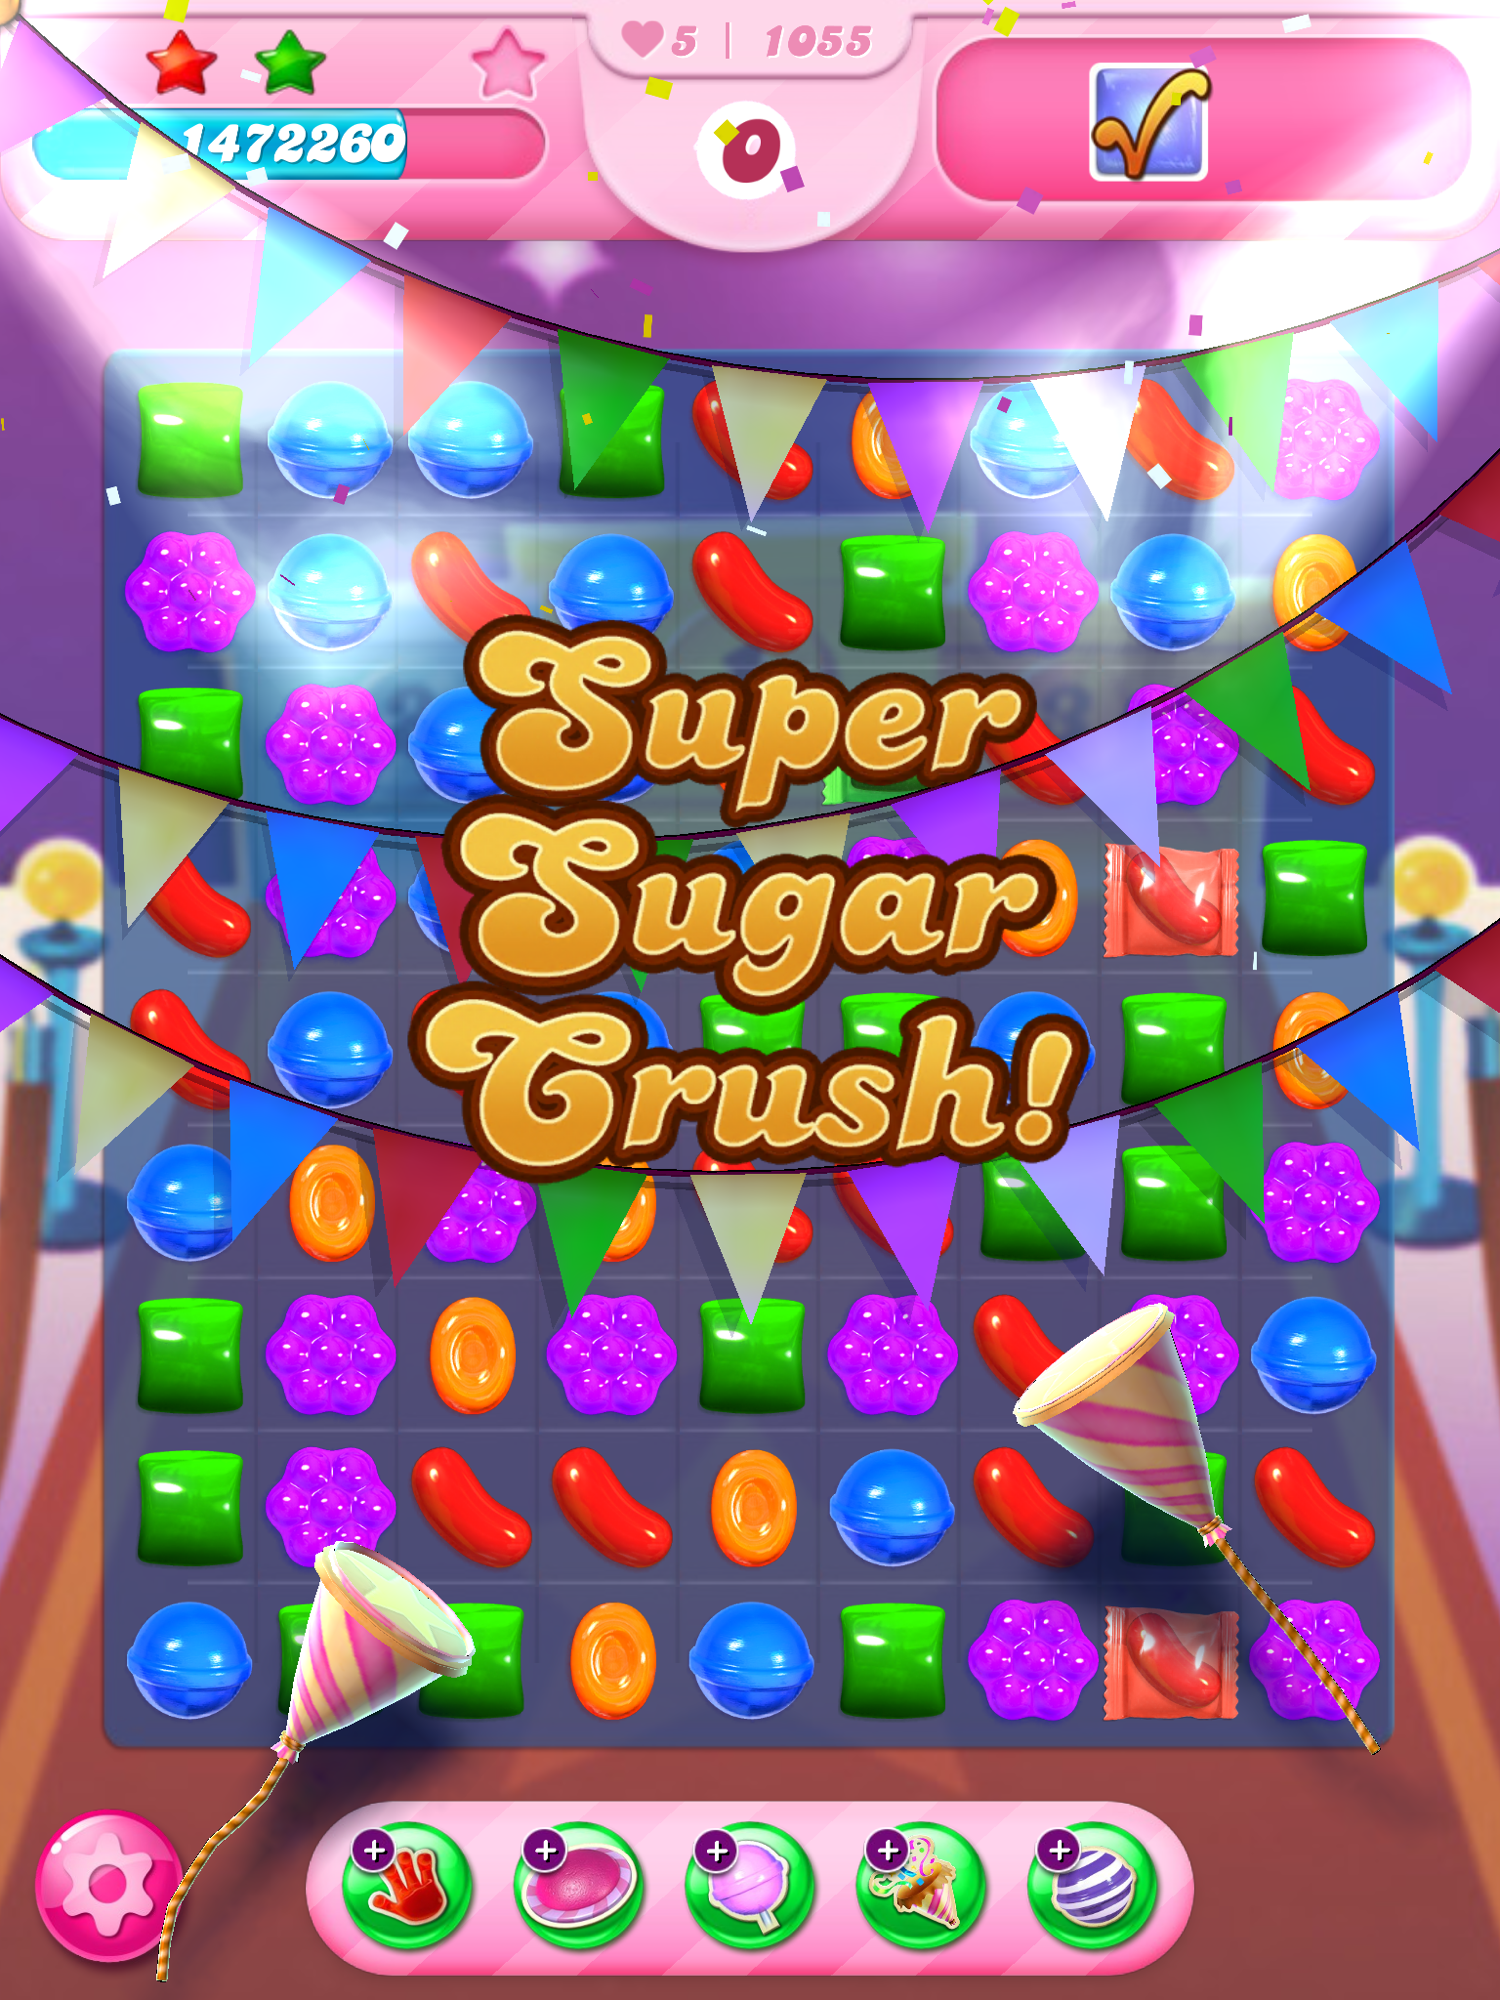 Super sugar crush!